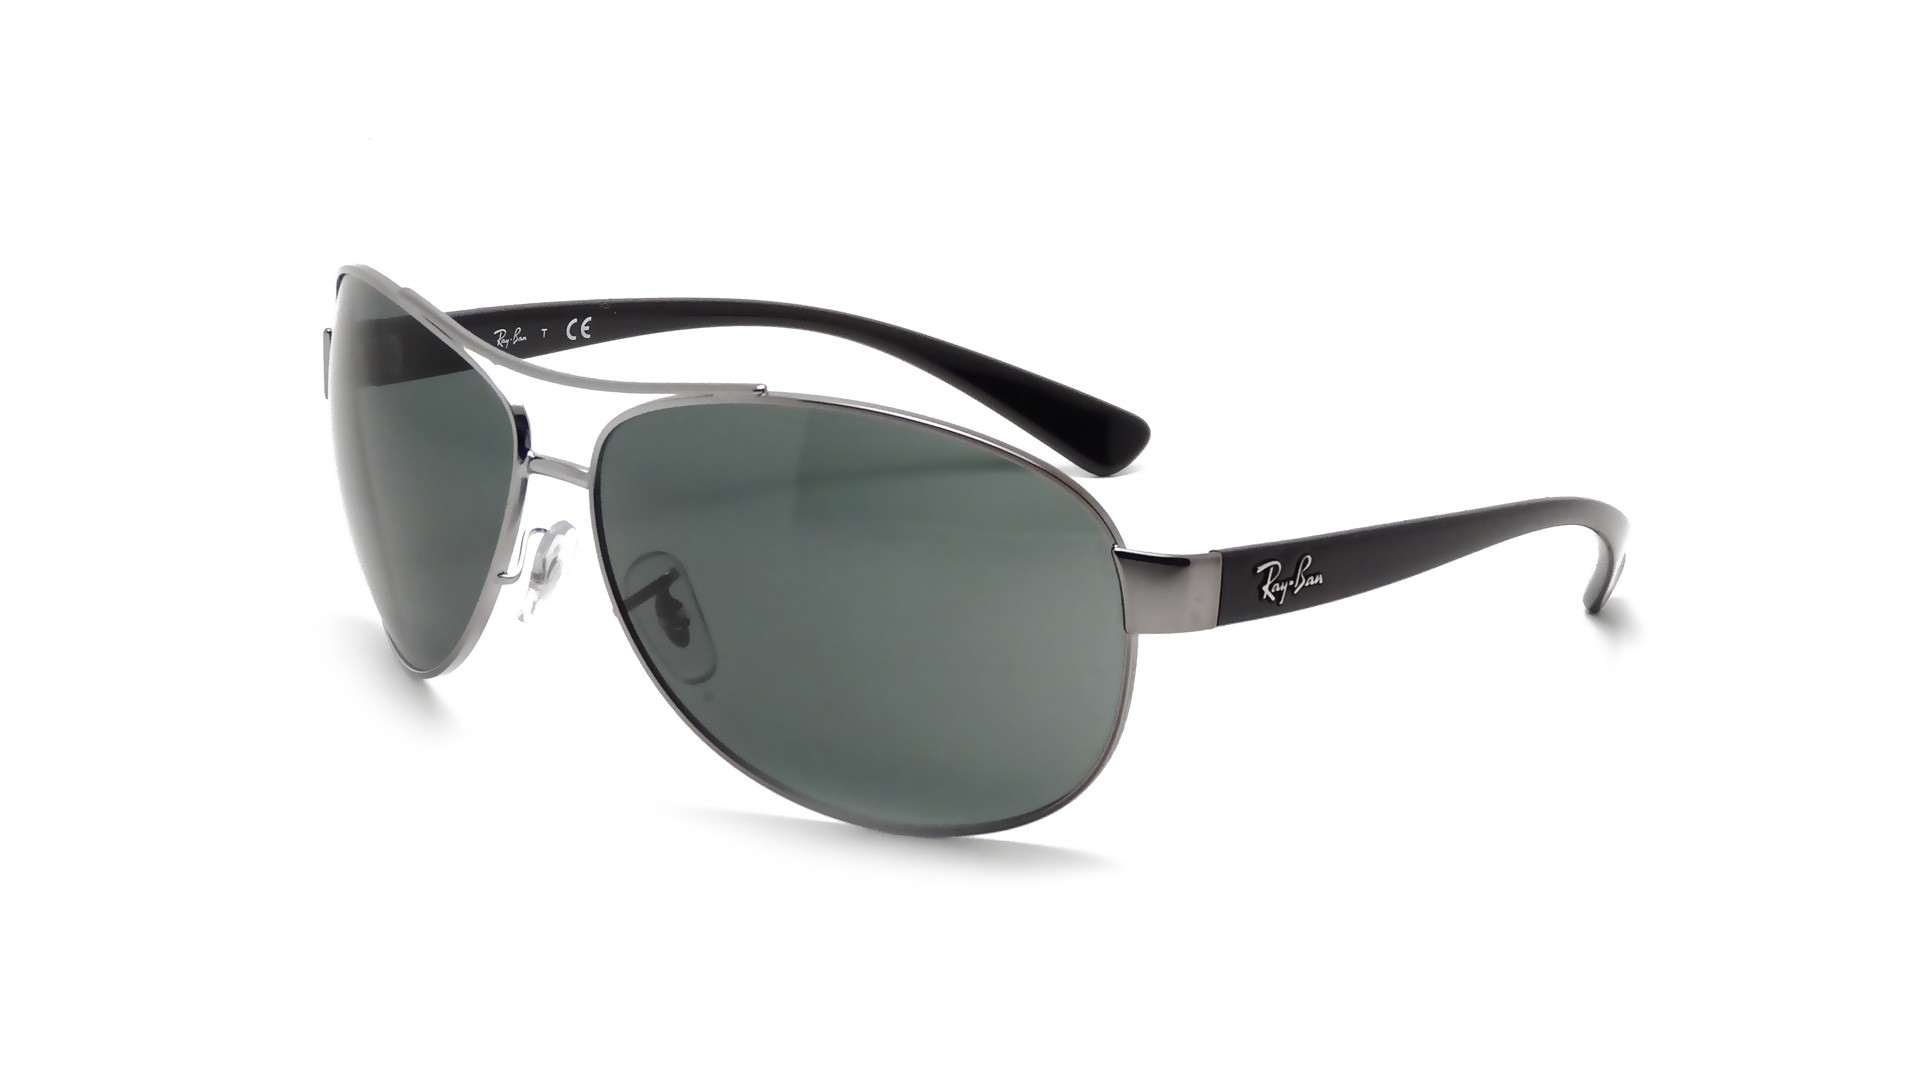 6b93e1f878ab1a Ray-Ban RB3386 004 71 67-13 Argent   Prix 84,90 €   Visiofactory